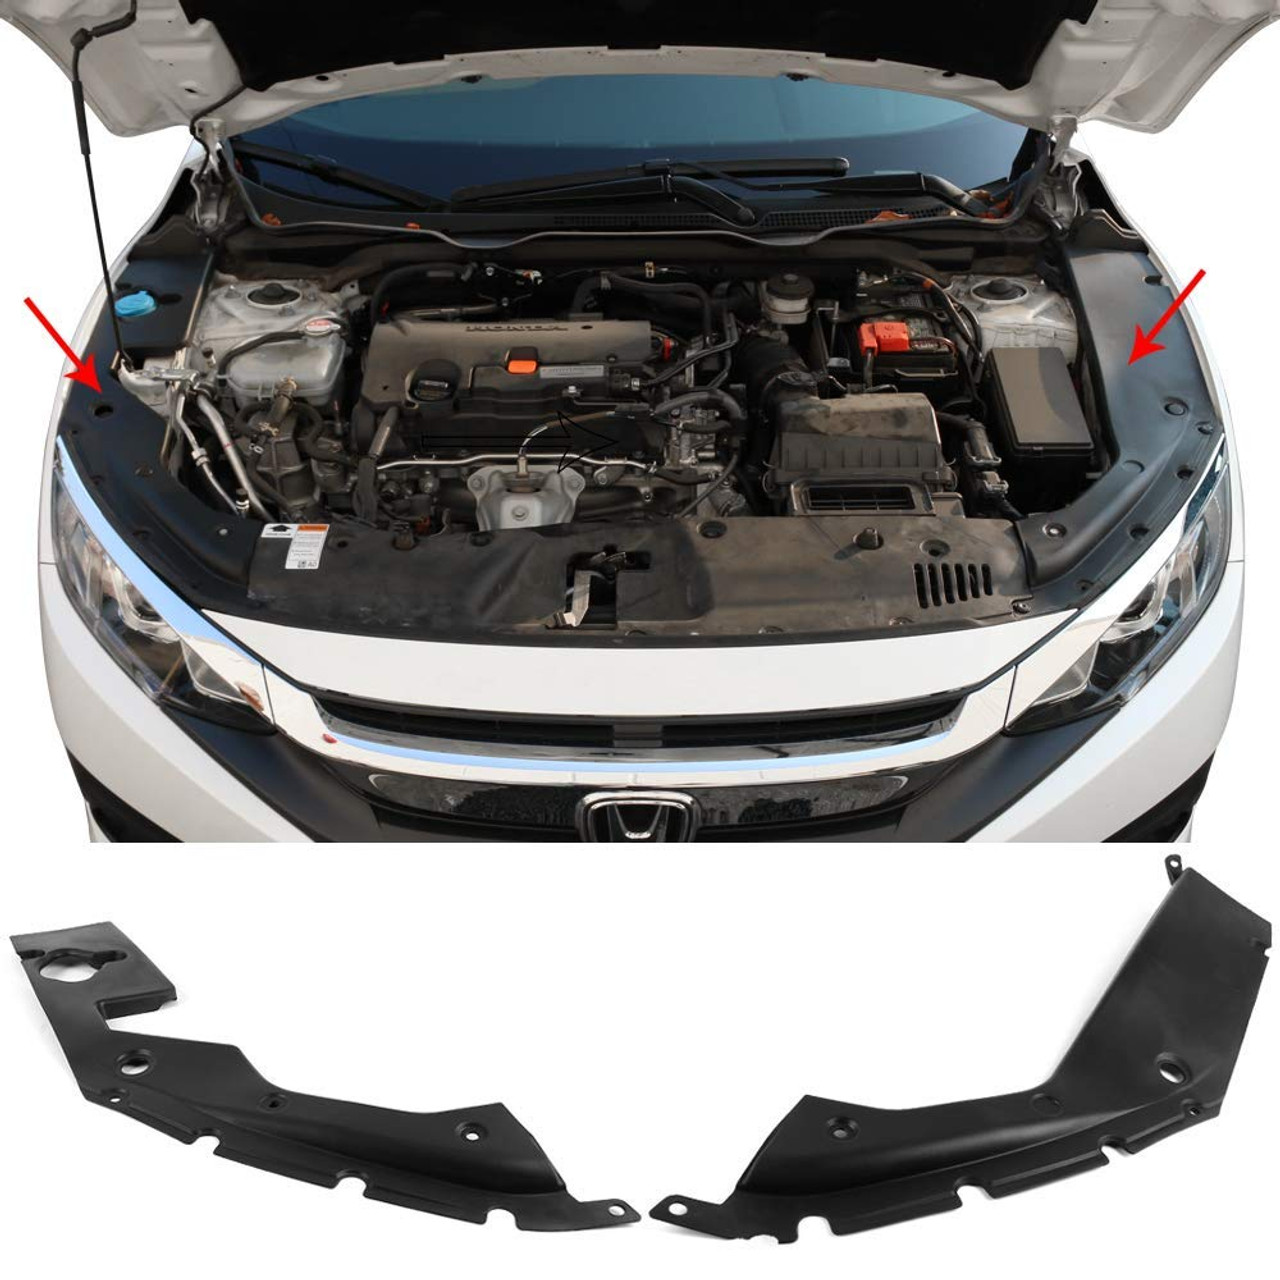 Engine Bay Side Panel Covers Fits 2016 2018 Honda Civic Unpainted Abs Long Version X Gen 10 Generation Left And Right Pair So Cal Accessories